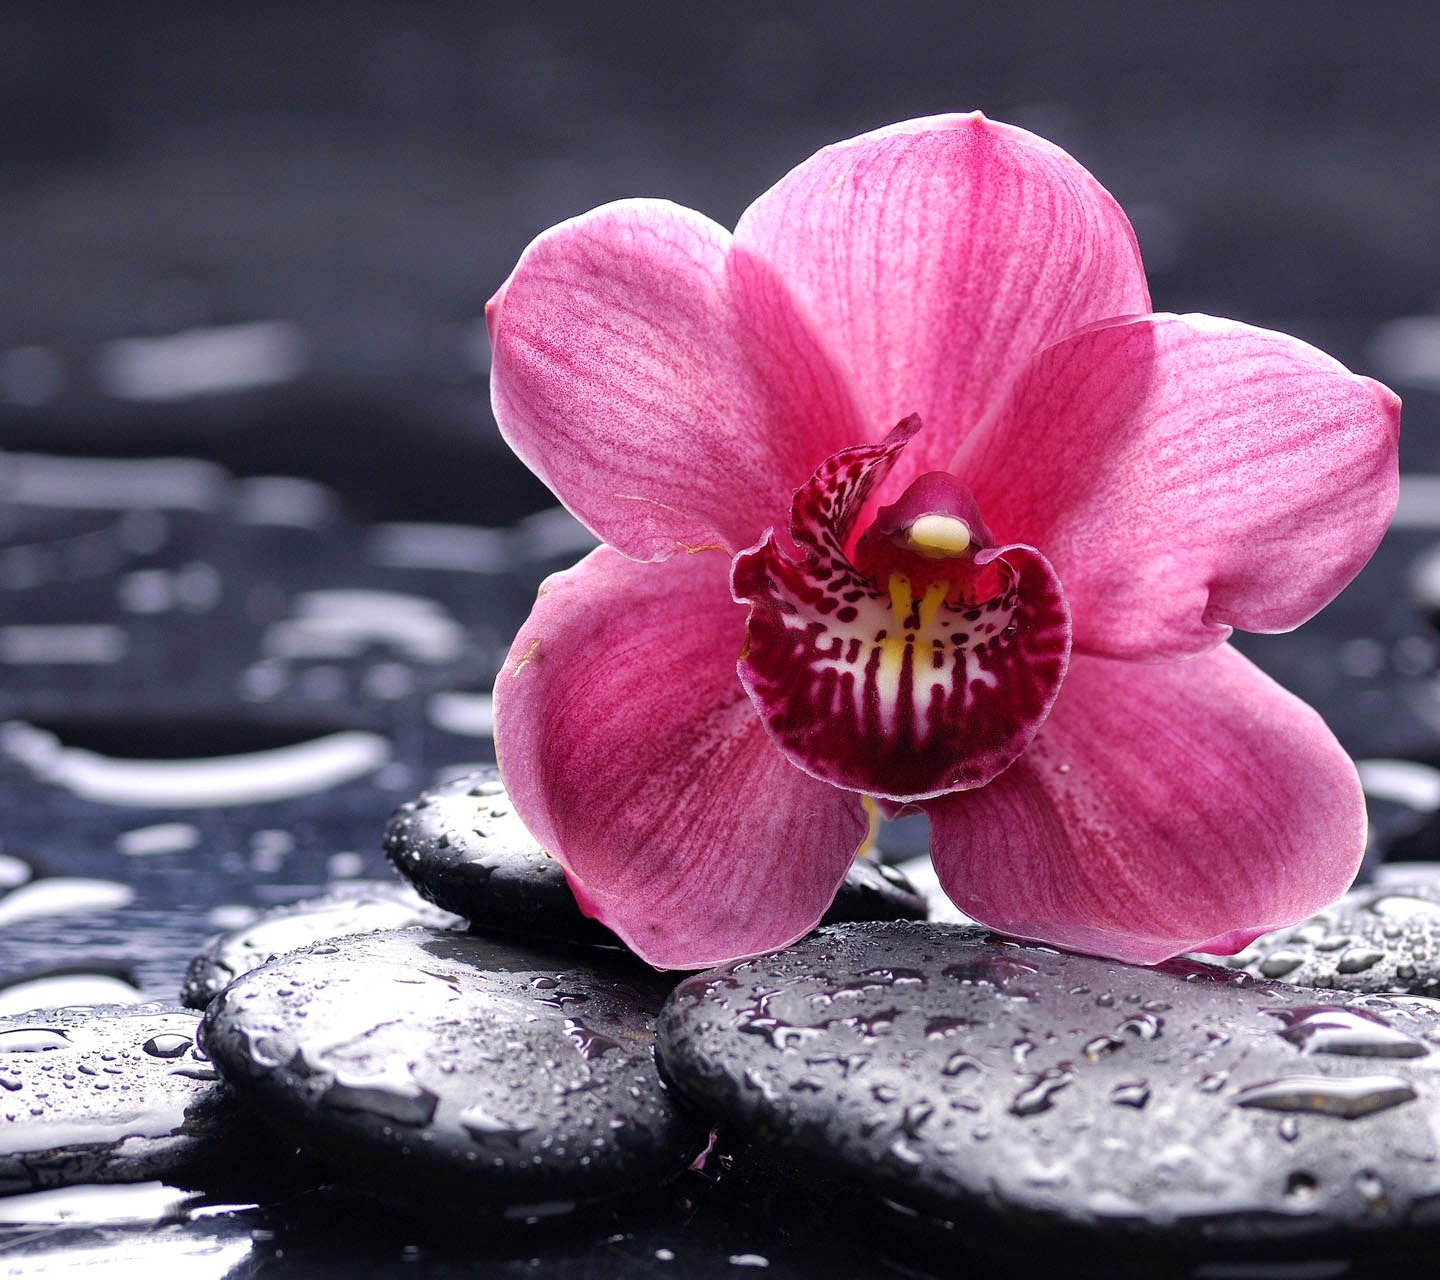 Orchid flower image hd wallpaper stock photos free download izmirmasajfo